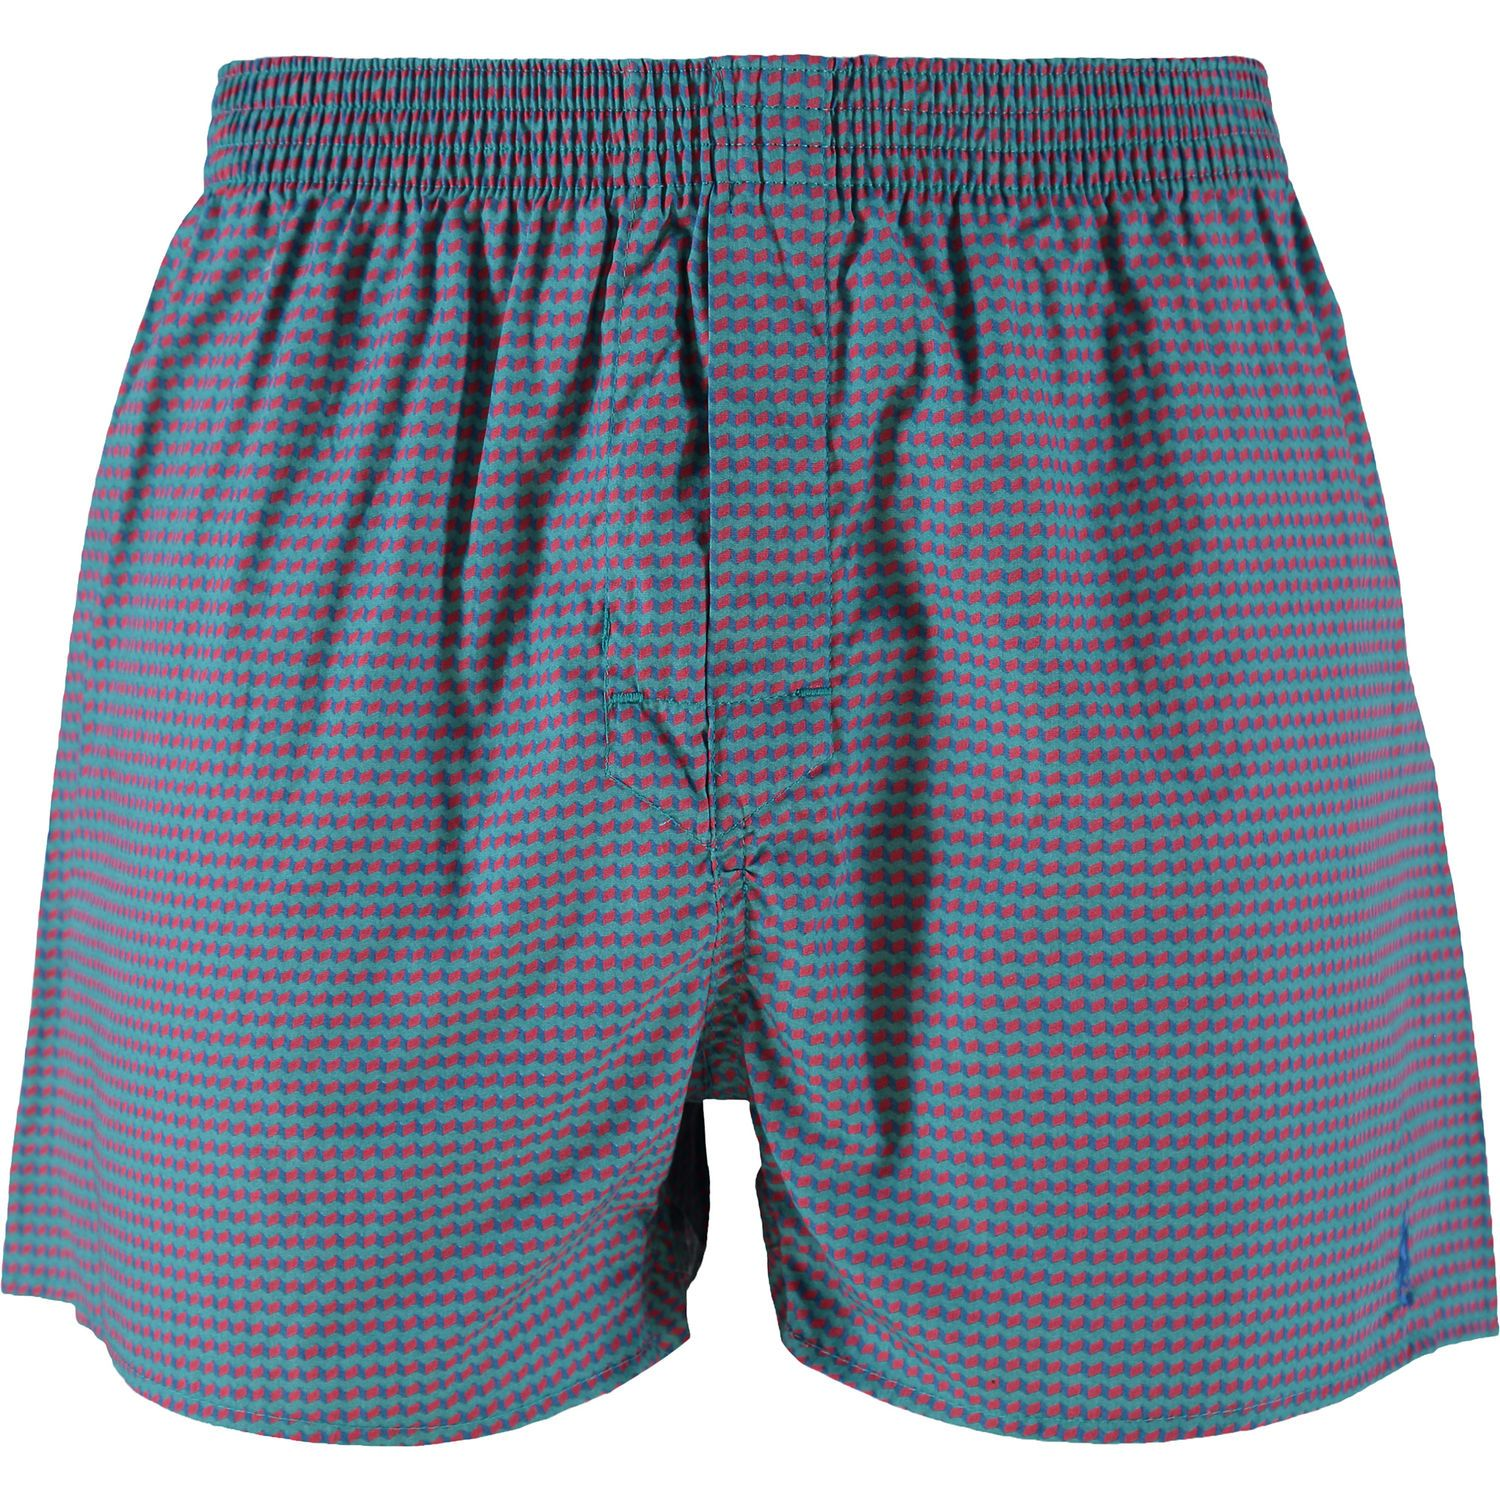 97a6a810a3d18 Multicoloured Geometric Boxer Shorts - Father s Day - Gifts - TK Maxx